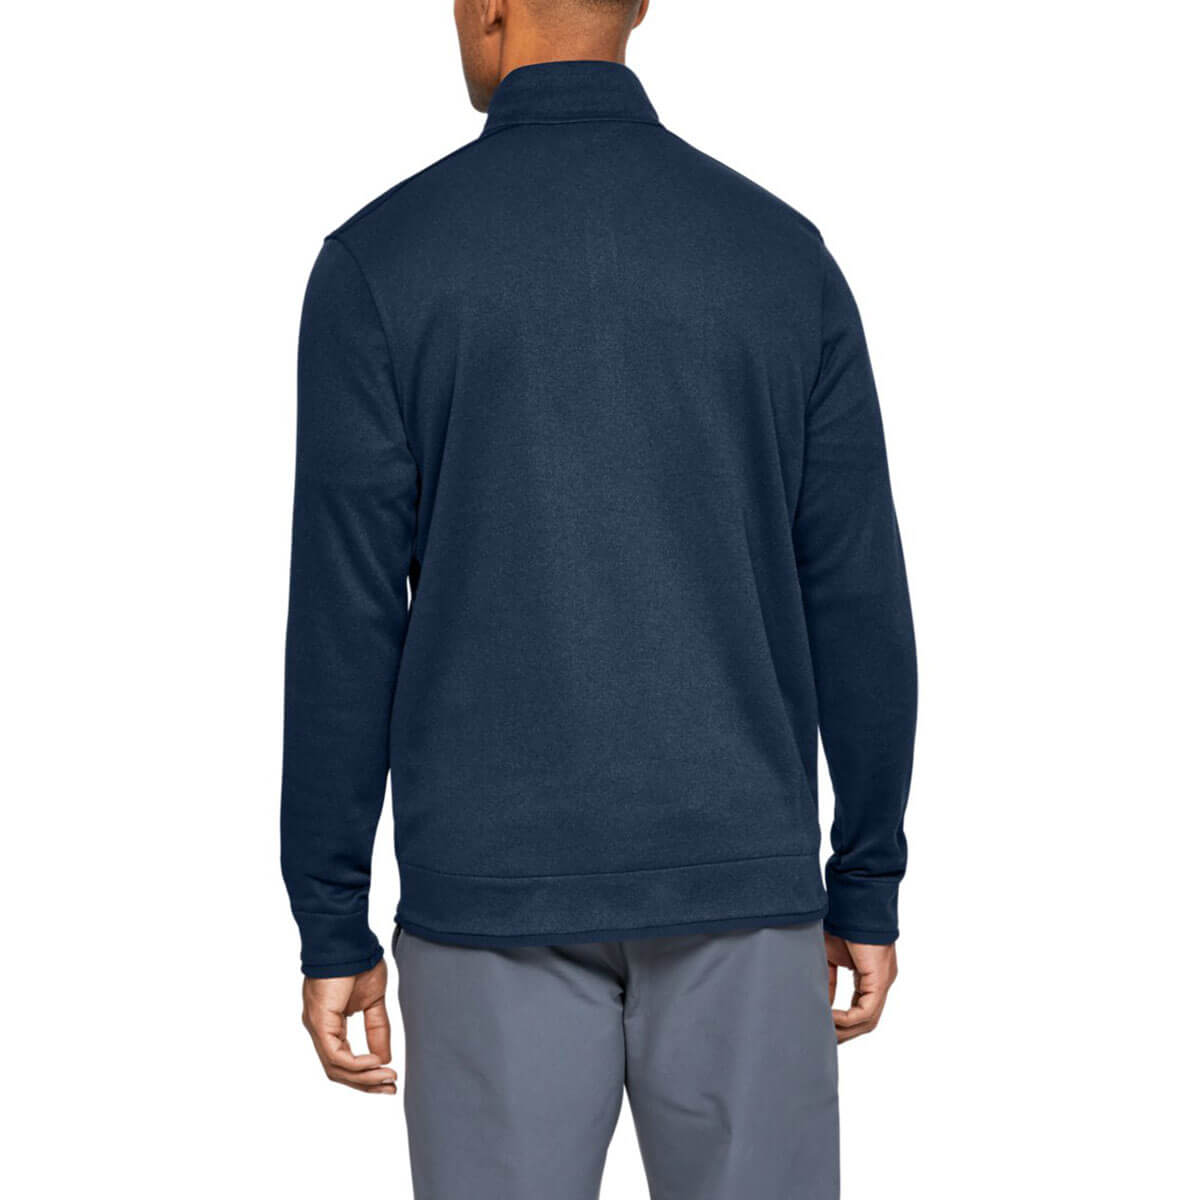 Under-Armour-Mens-UA-SweaterFleece-1-2-Zip-Water-Resistant-Pullover-40-OFF-RRP thumbnail 6